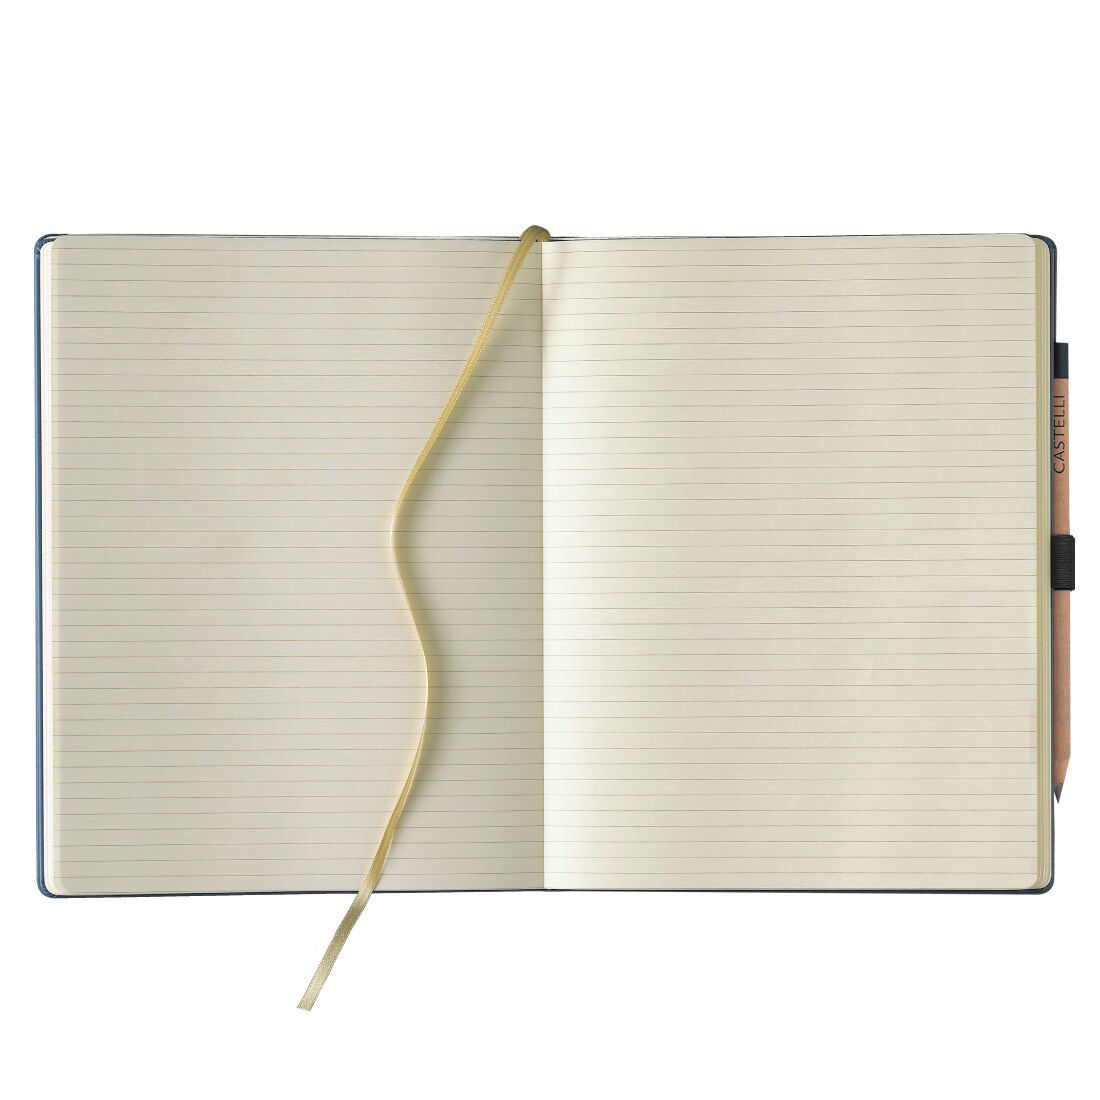 Large Journal Notebooks - Lined Page